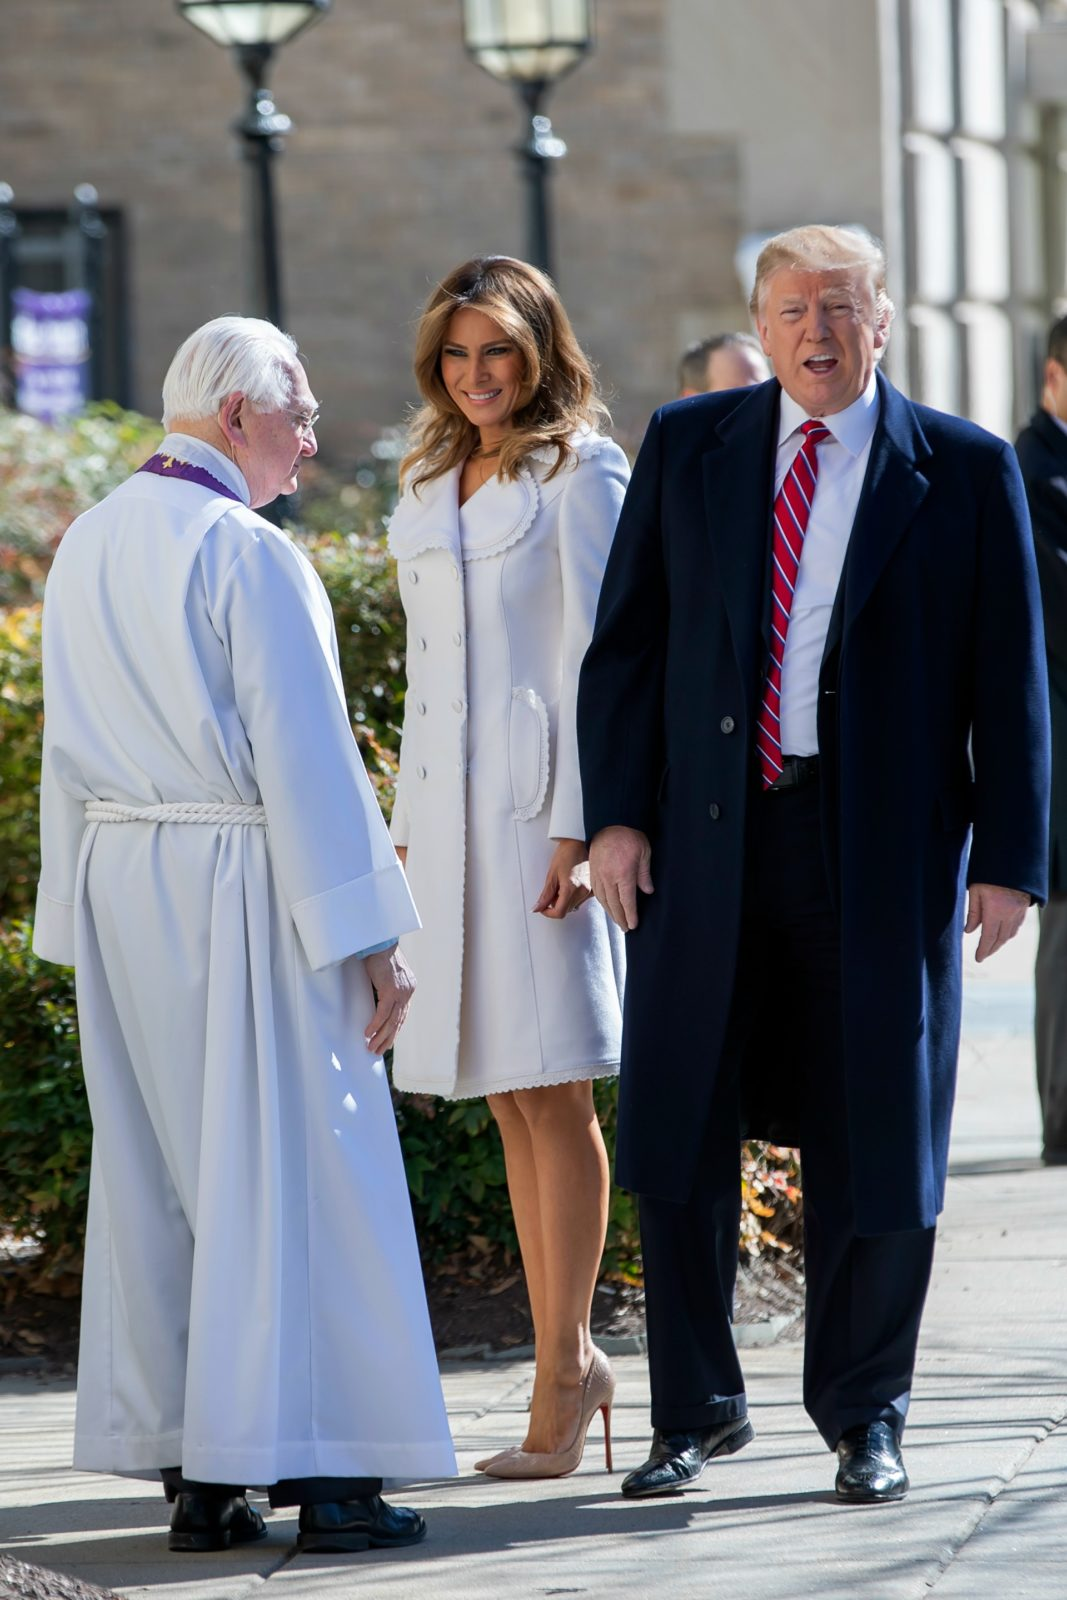 Melania Trump looked stunning in a white coat as she attended a St Patrick's Day church service alongside husband Donald Trump. Source: Getty